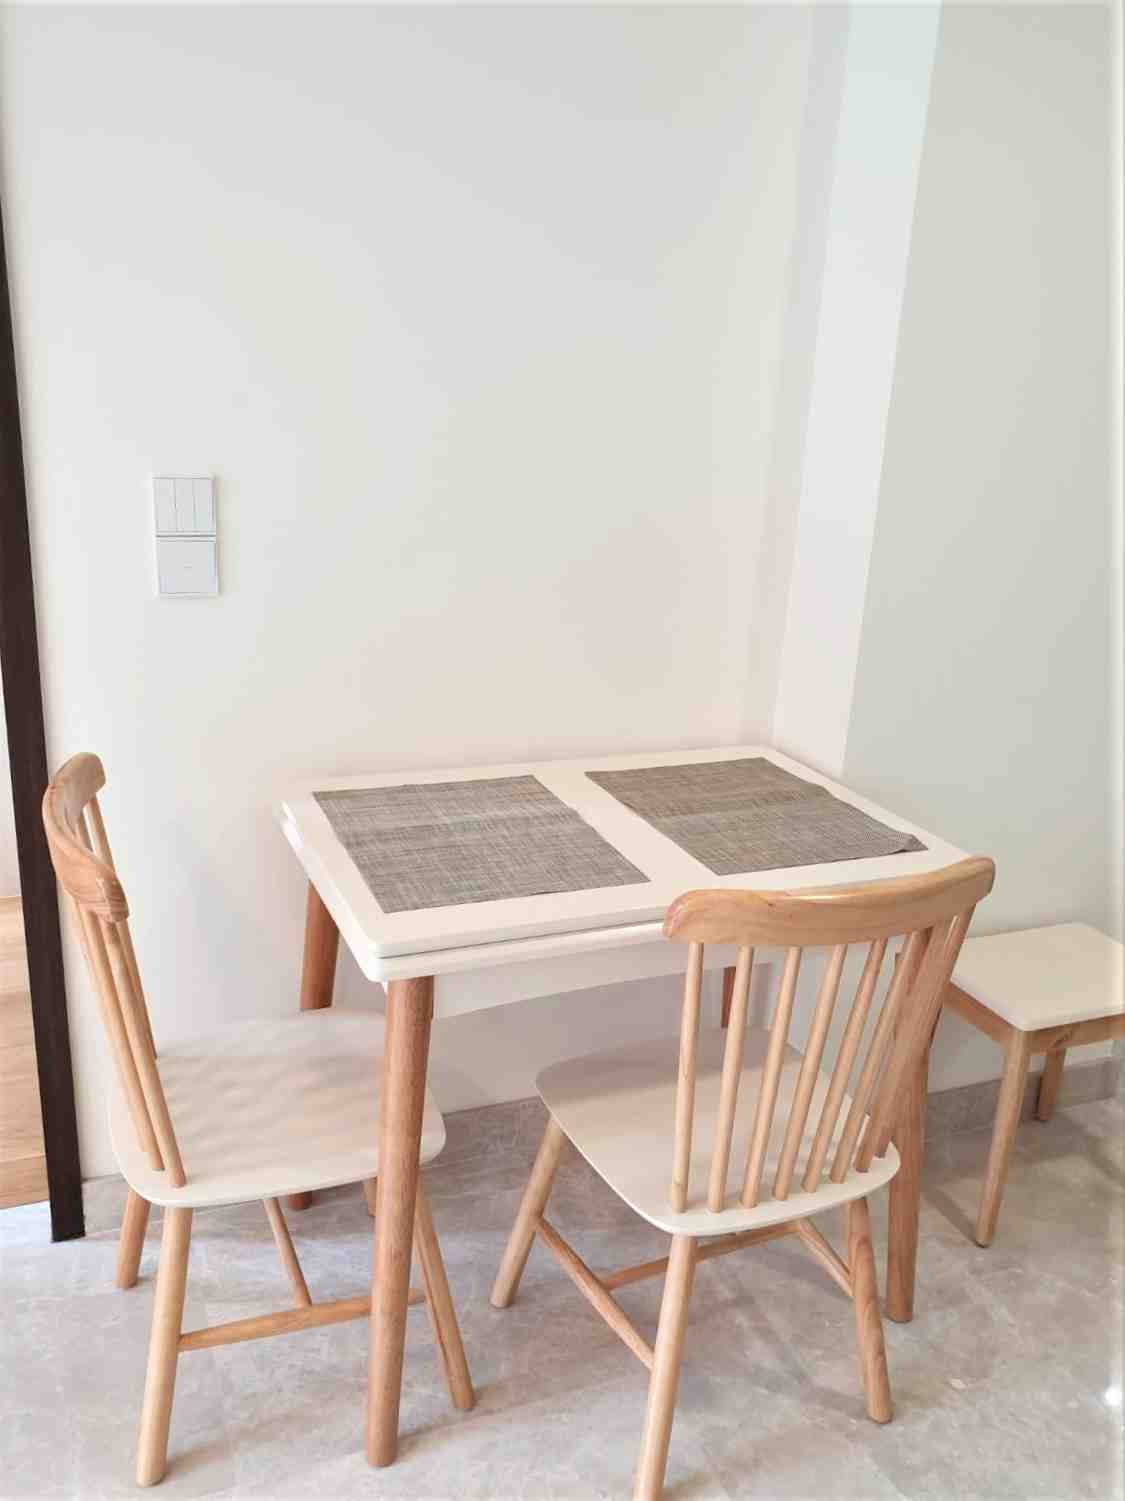 Ppr dining table